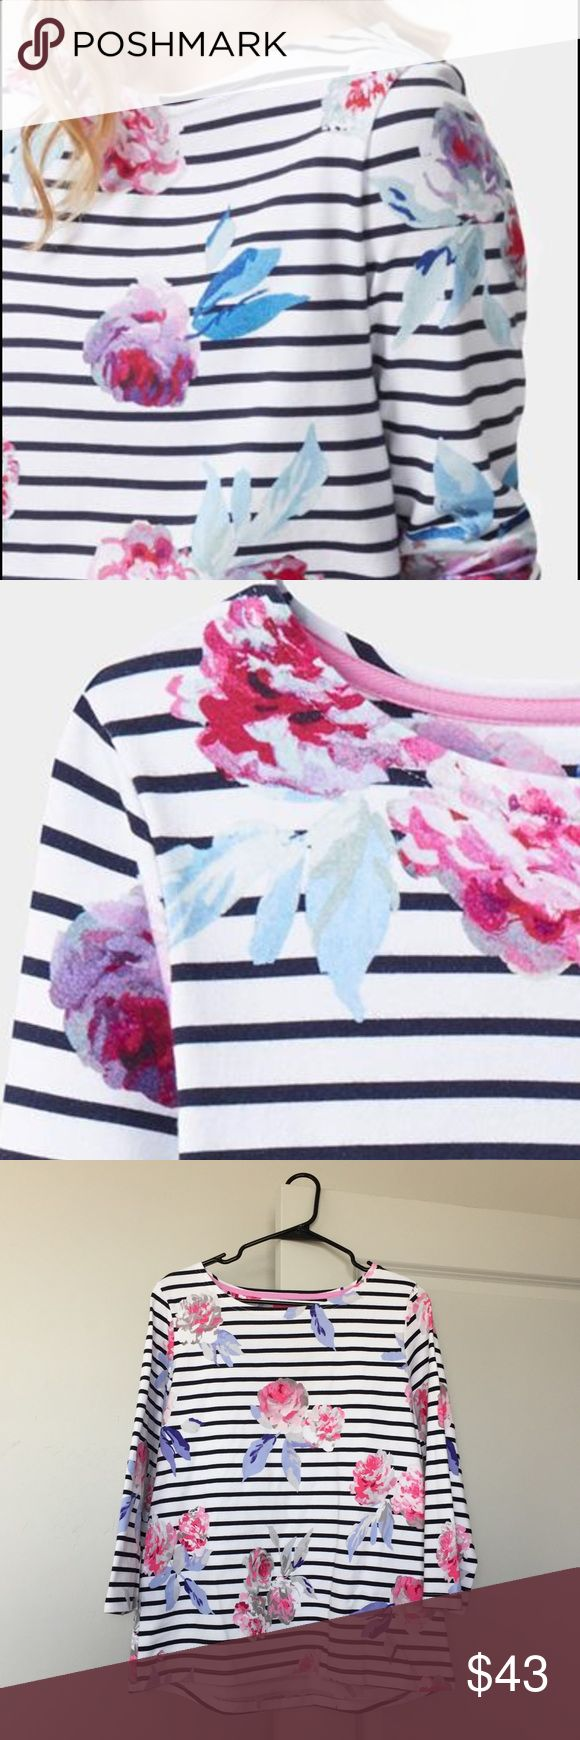 """Floral Stripe Joules Top Joules Harbour Print Jersey Top! Brand new with tags.   Chest: 41"""" Length: 26"""" Material: 100% Cotton  ❌NO TRADES, NO HOLDS, NO PAYPAL ❌ Joules Tops Blouses"""